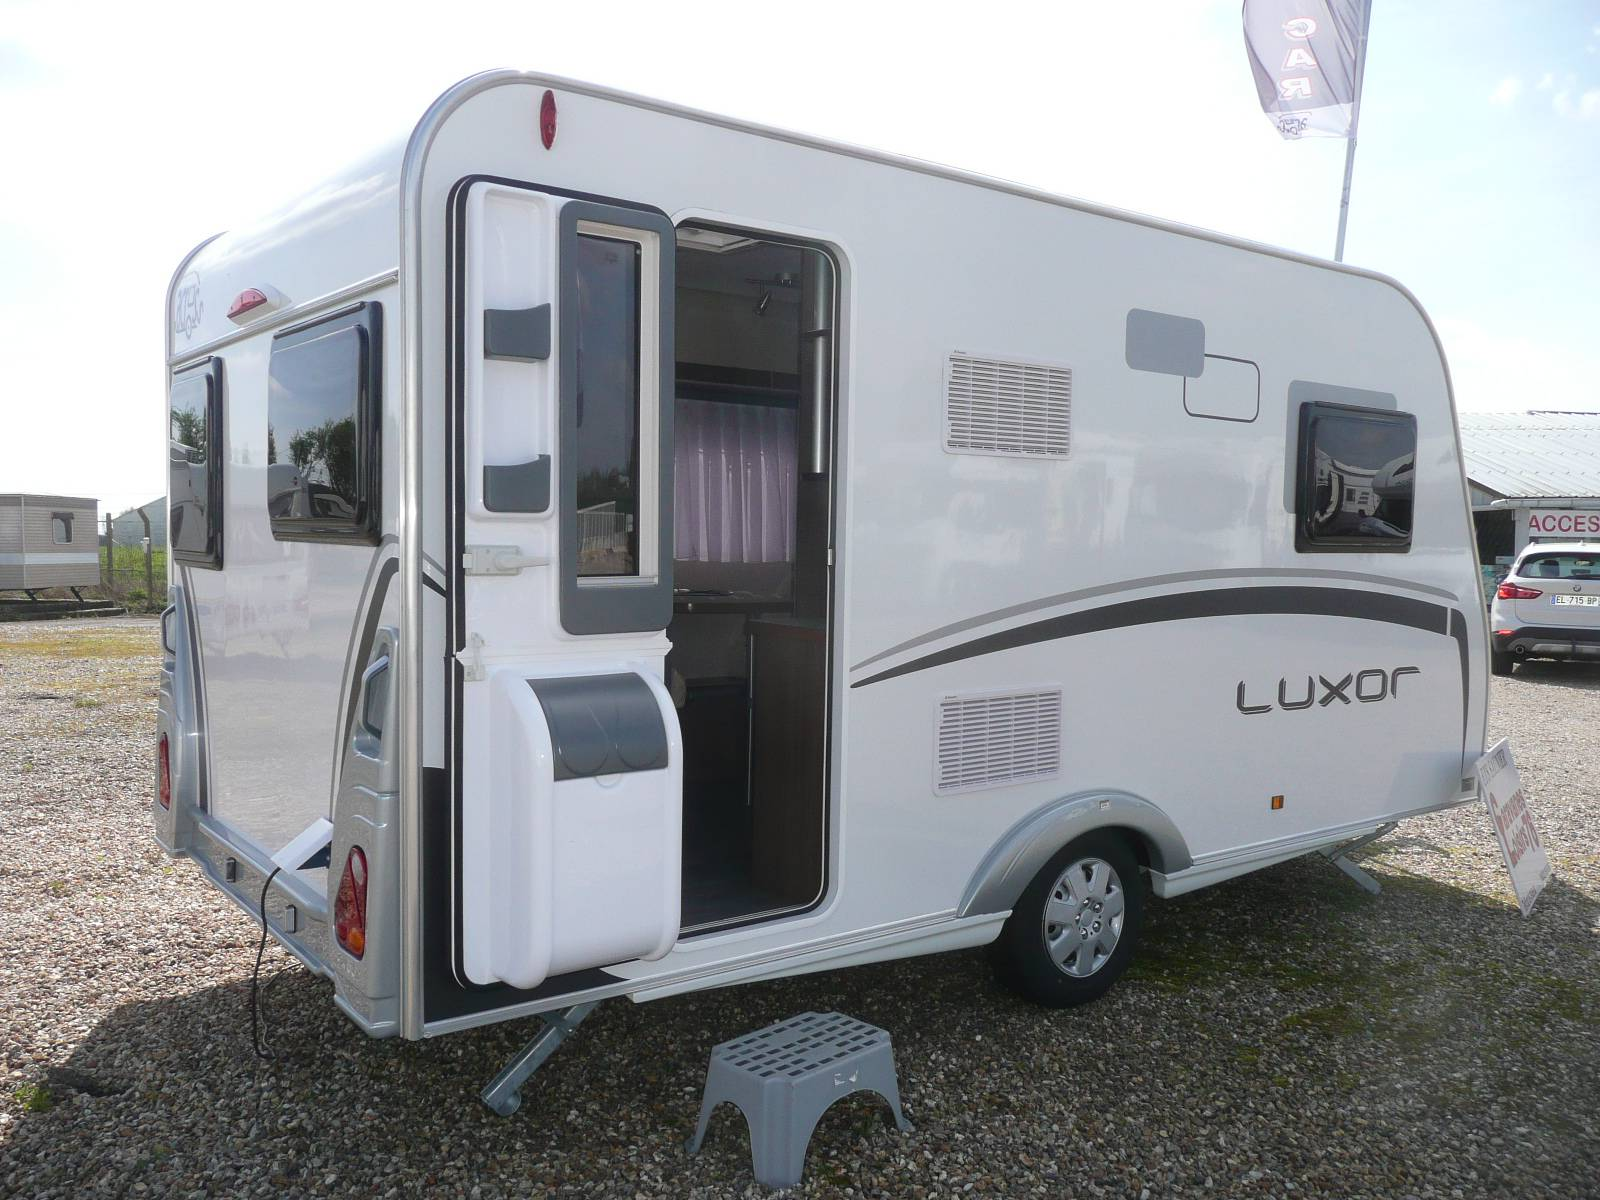 a vendre caravane neuve across luxor 396 cp mod le 2017 rouen boos 76 camping car. Black Bedroom Furniture Sets. Home Design Ideas